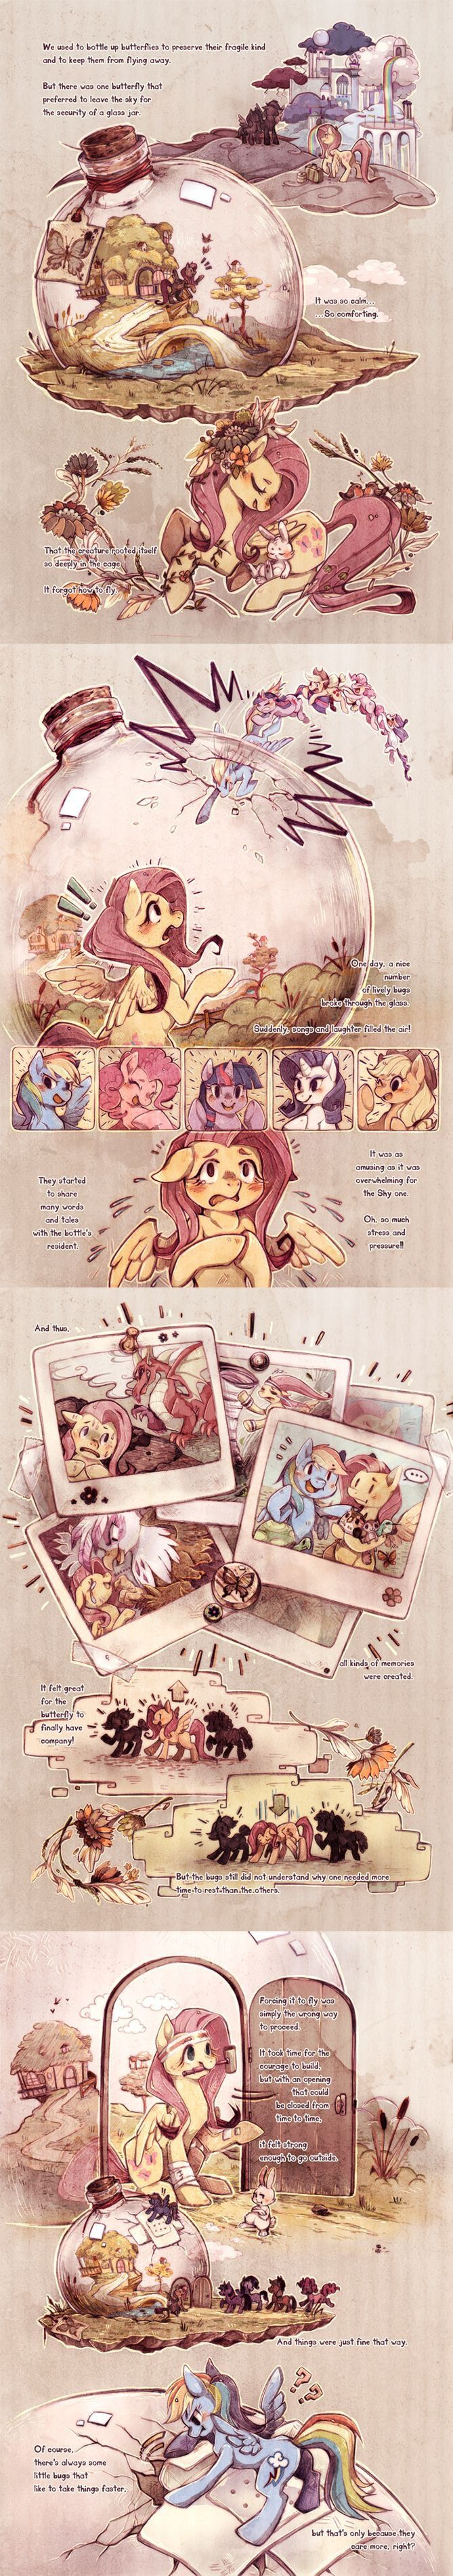 Fluttershy. I lov3 the way they put this